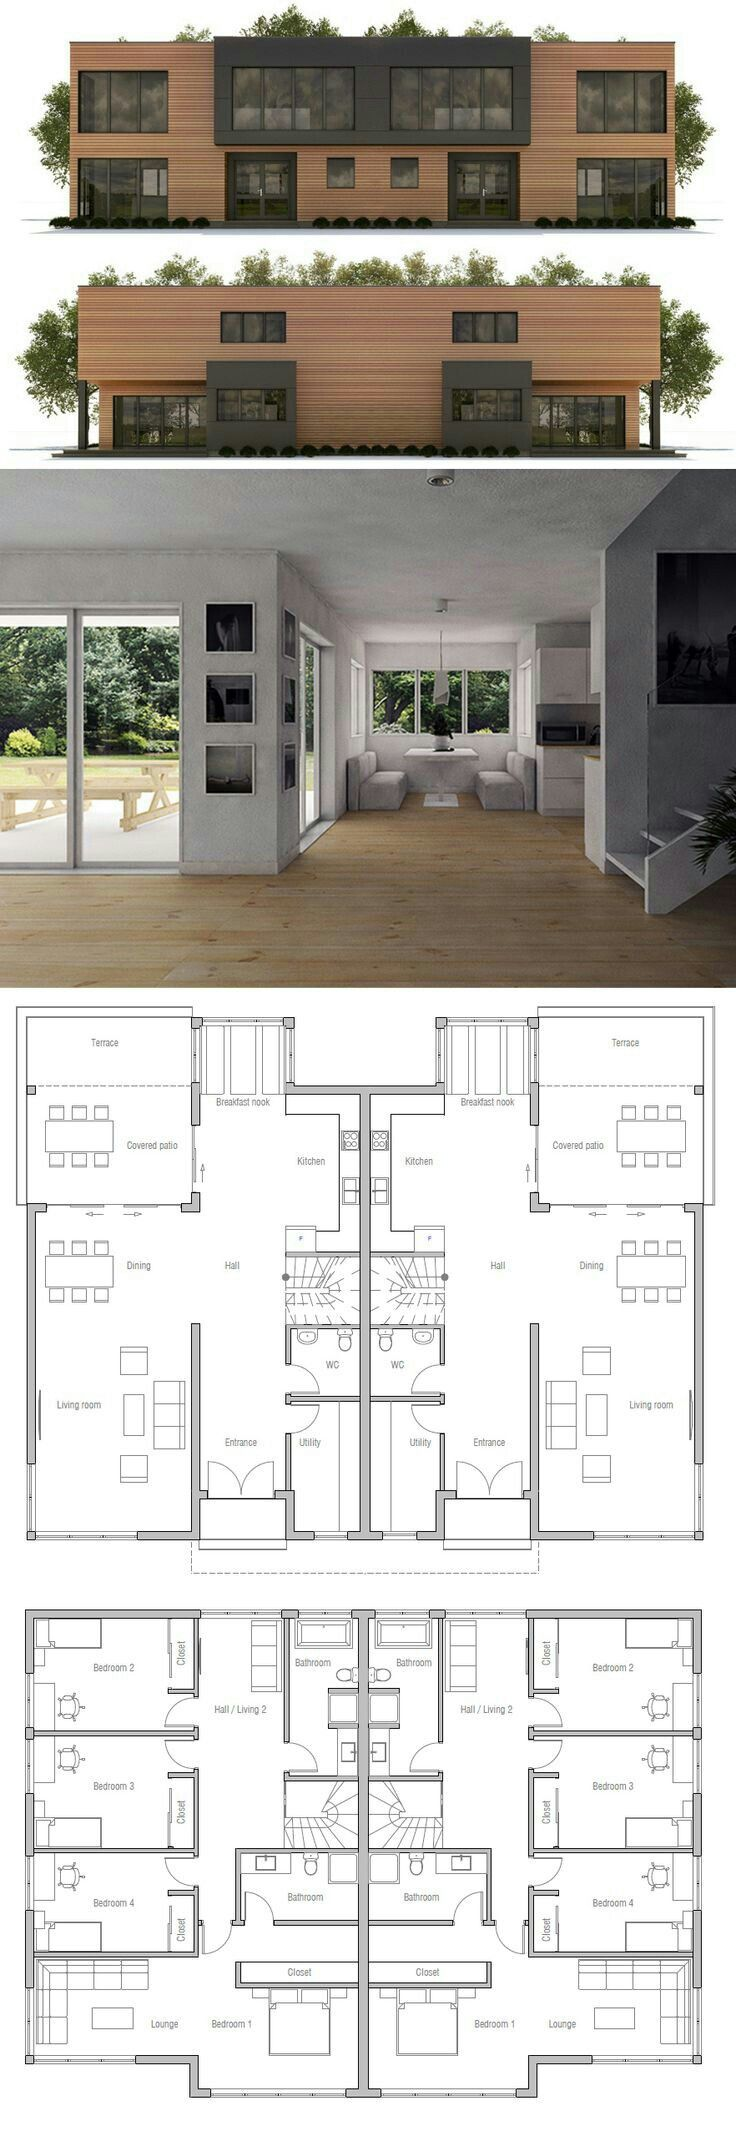 Padippura design images shape kerala home - South Indian Traditional House Plans Google Search Vaastu Plan Pinterest Traditional House Plans Traditional House And Traditional